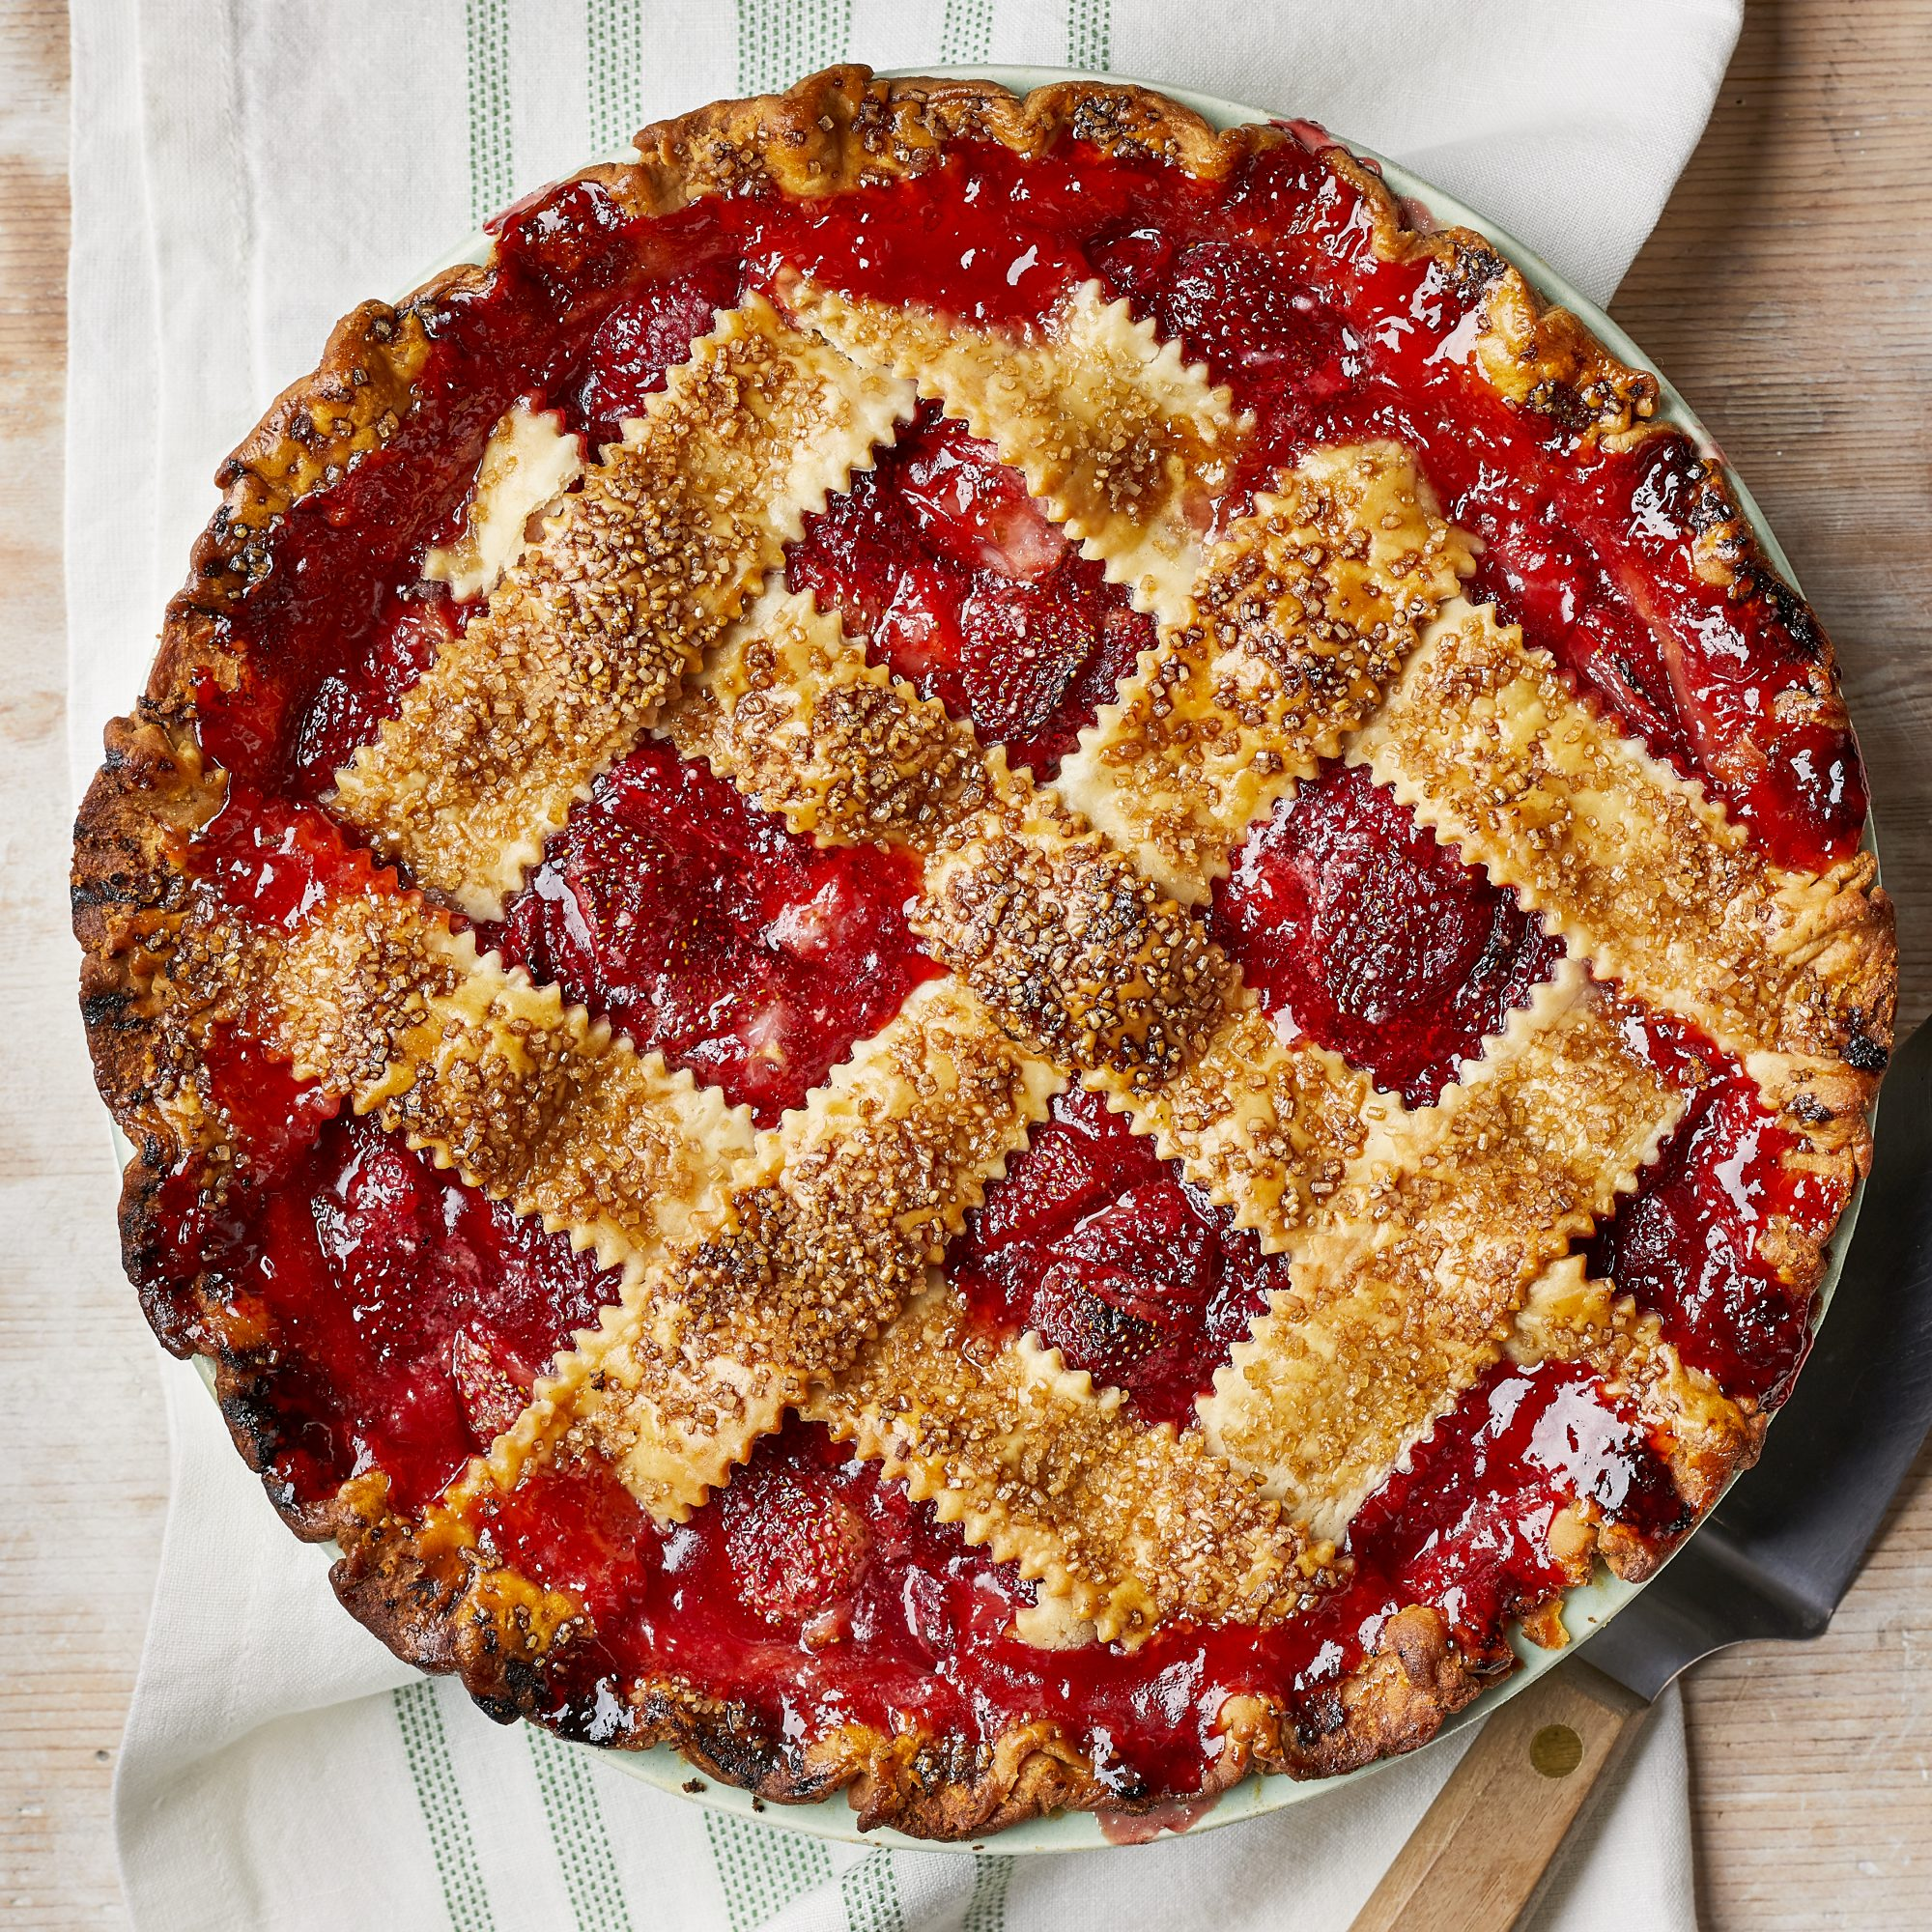 mr-Perfect Strawberry Pie image